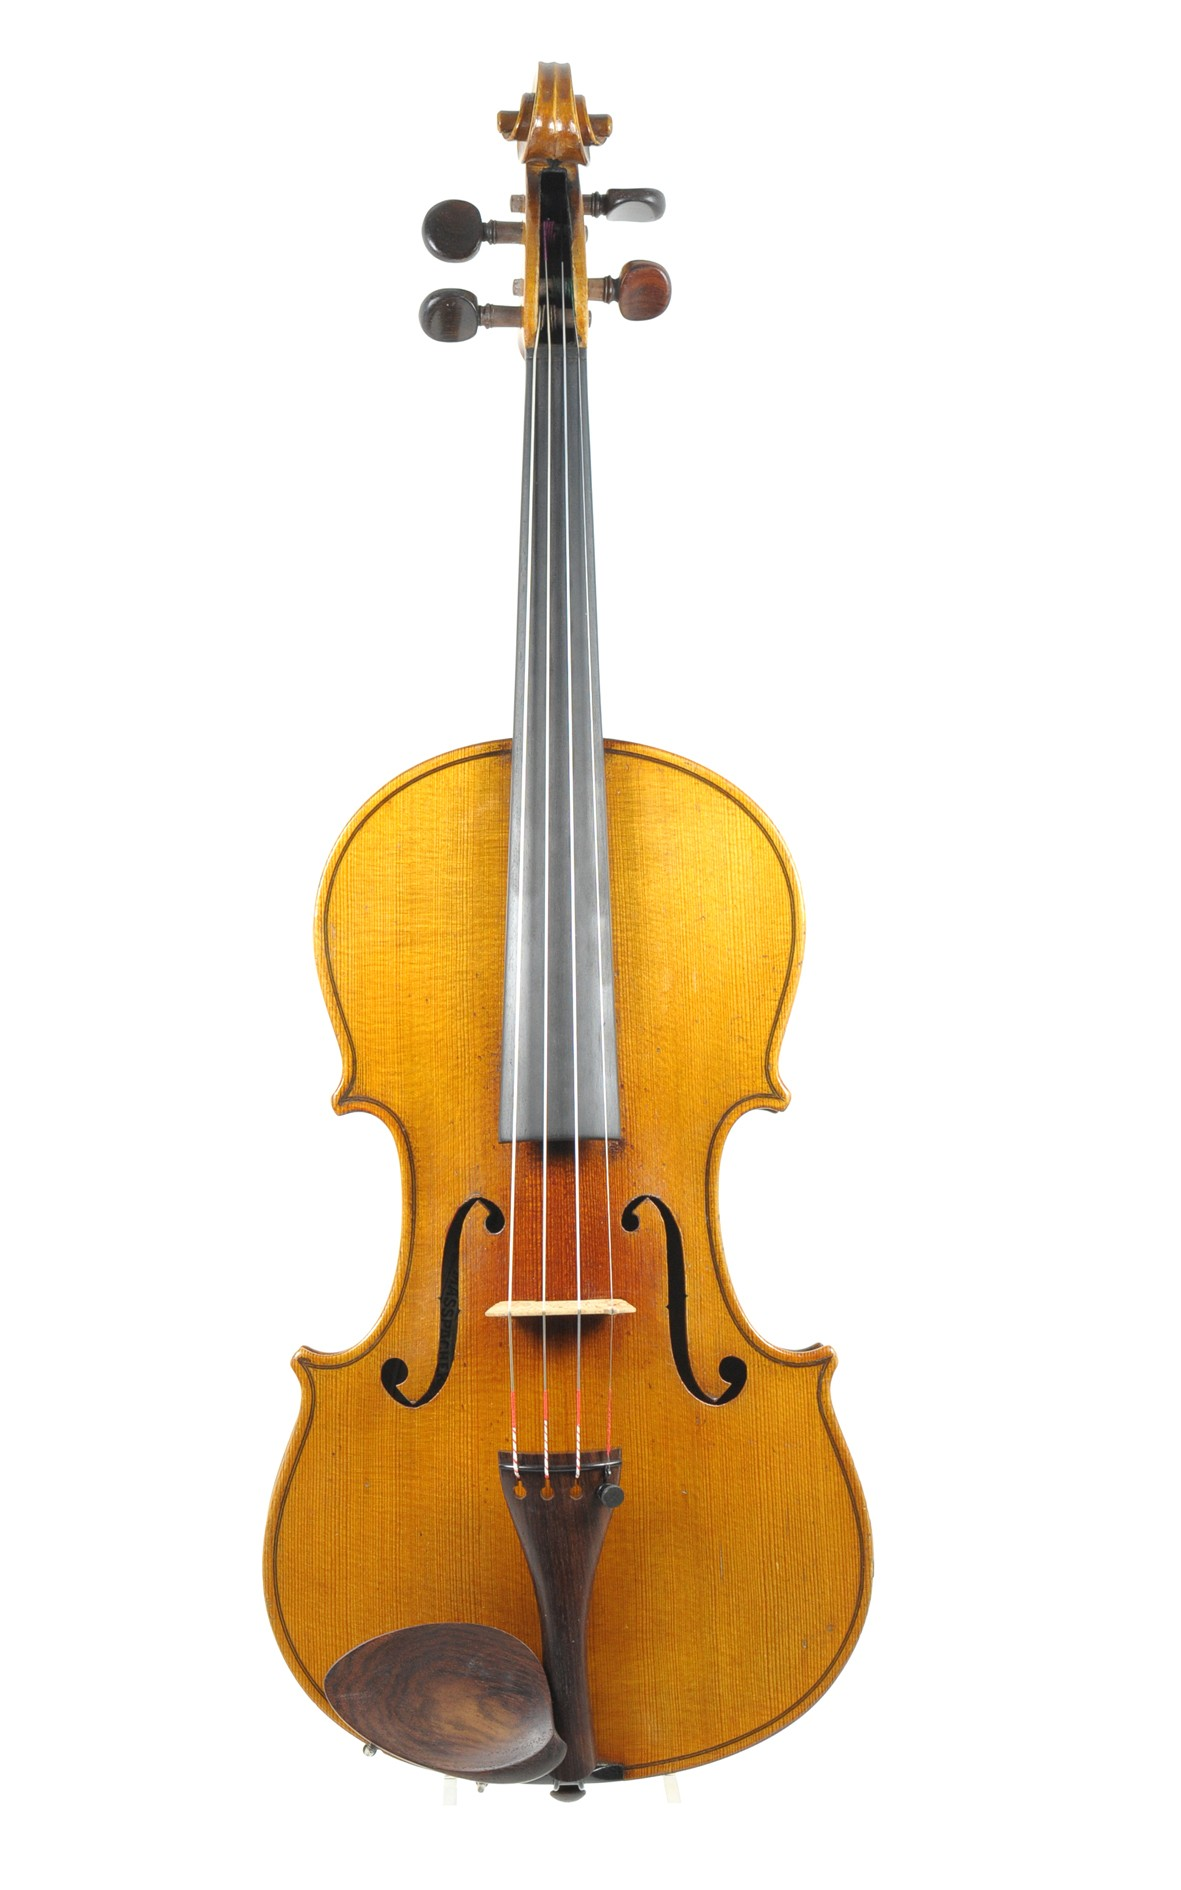 French violin, Lutherie Masspacher, approx. 1910